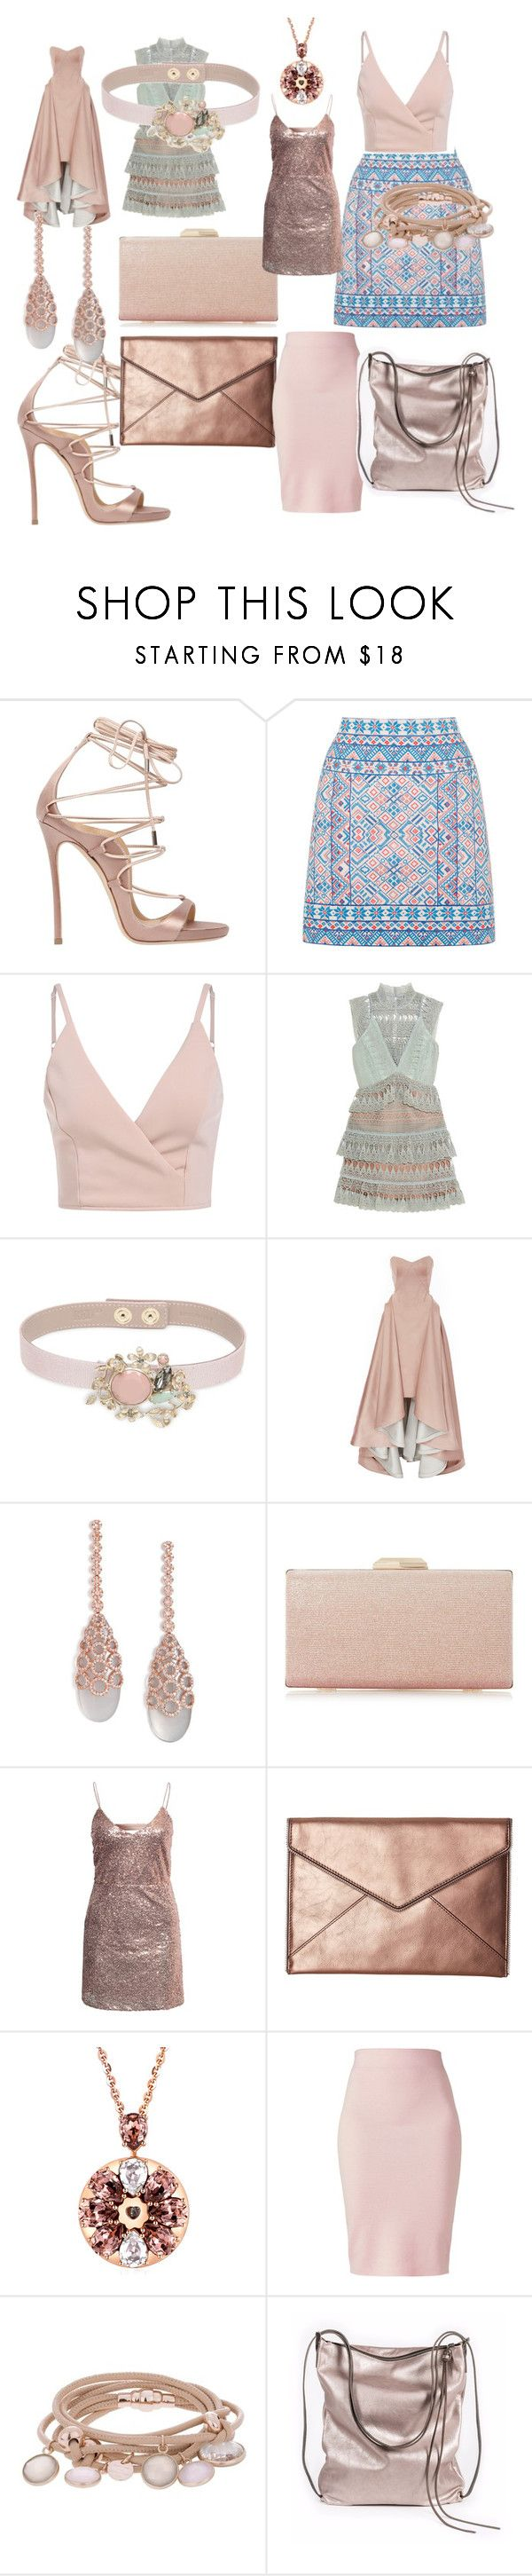 """""""#style#chick#moda#trend#"""" by hannazakaria ❤ liked on Polyvore featuring Dsquared2, Oasis, self-portrait, RED Valentino, Zac Posen, Carla Amorim, NLY Trend, Rebecca Minkoff, Winser London and Marjana von Berlepsch"""